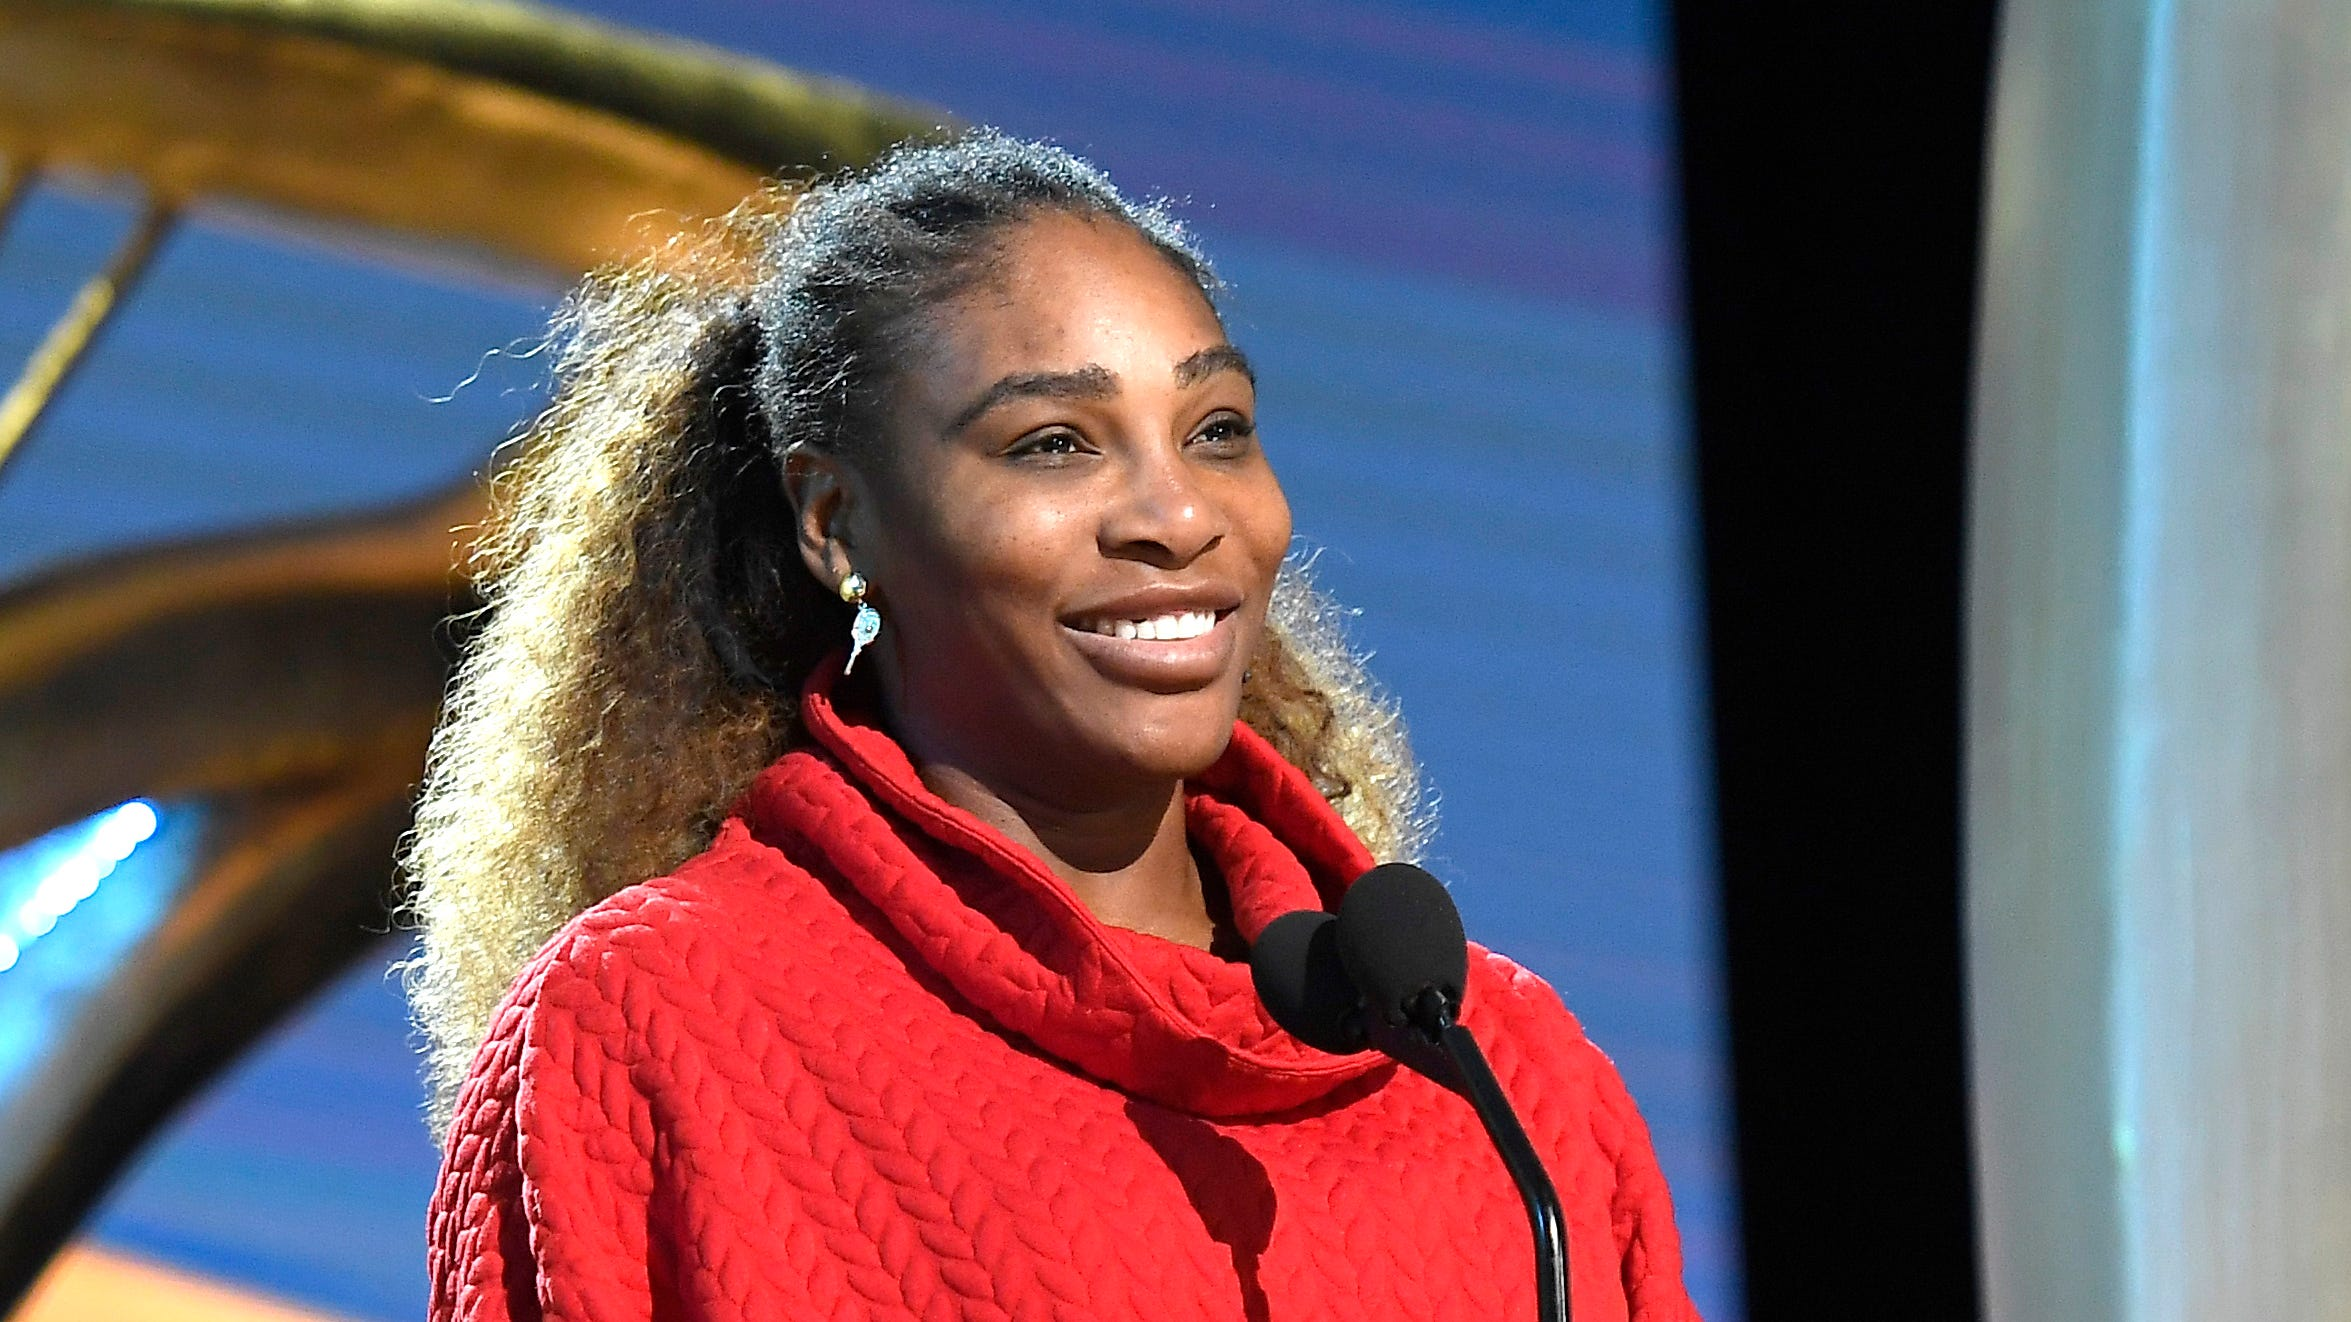 HOLLYWOOD, CALIFORNIA - FEBRUARY 23: Presenter Serena Williams speaks during the 91st Annual Academy Awards rehearsals at Hollywood and Highland on February 23, 2019 in Hollywood, California. (Photo by Kevork Djansezian/Getty Images) ORG XMIT: 775301697 ORIG FILE ID: 1131694888